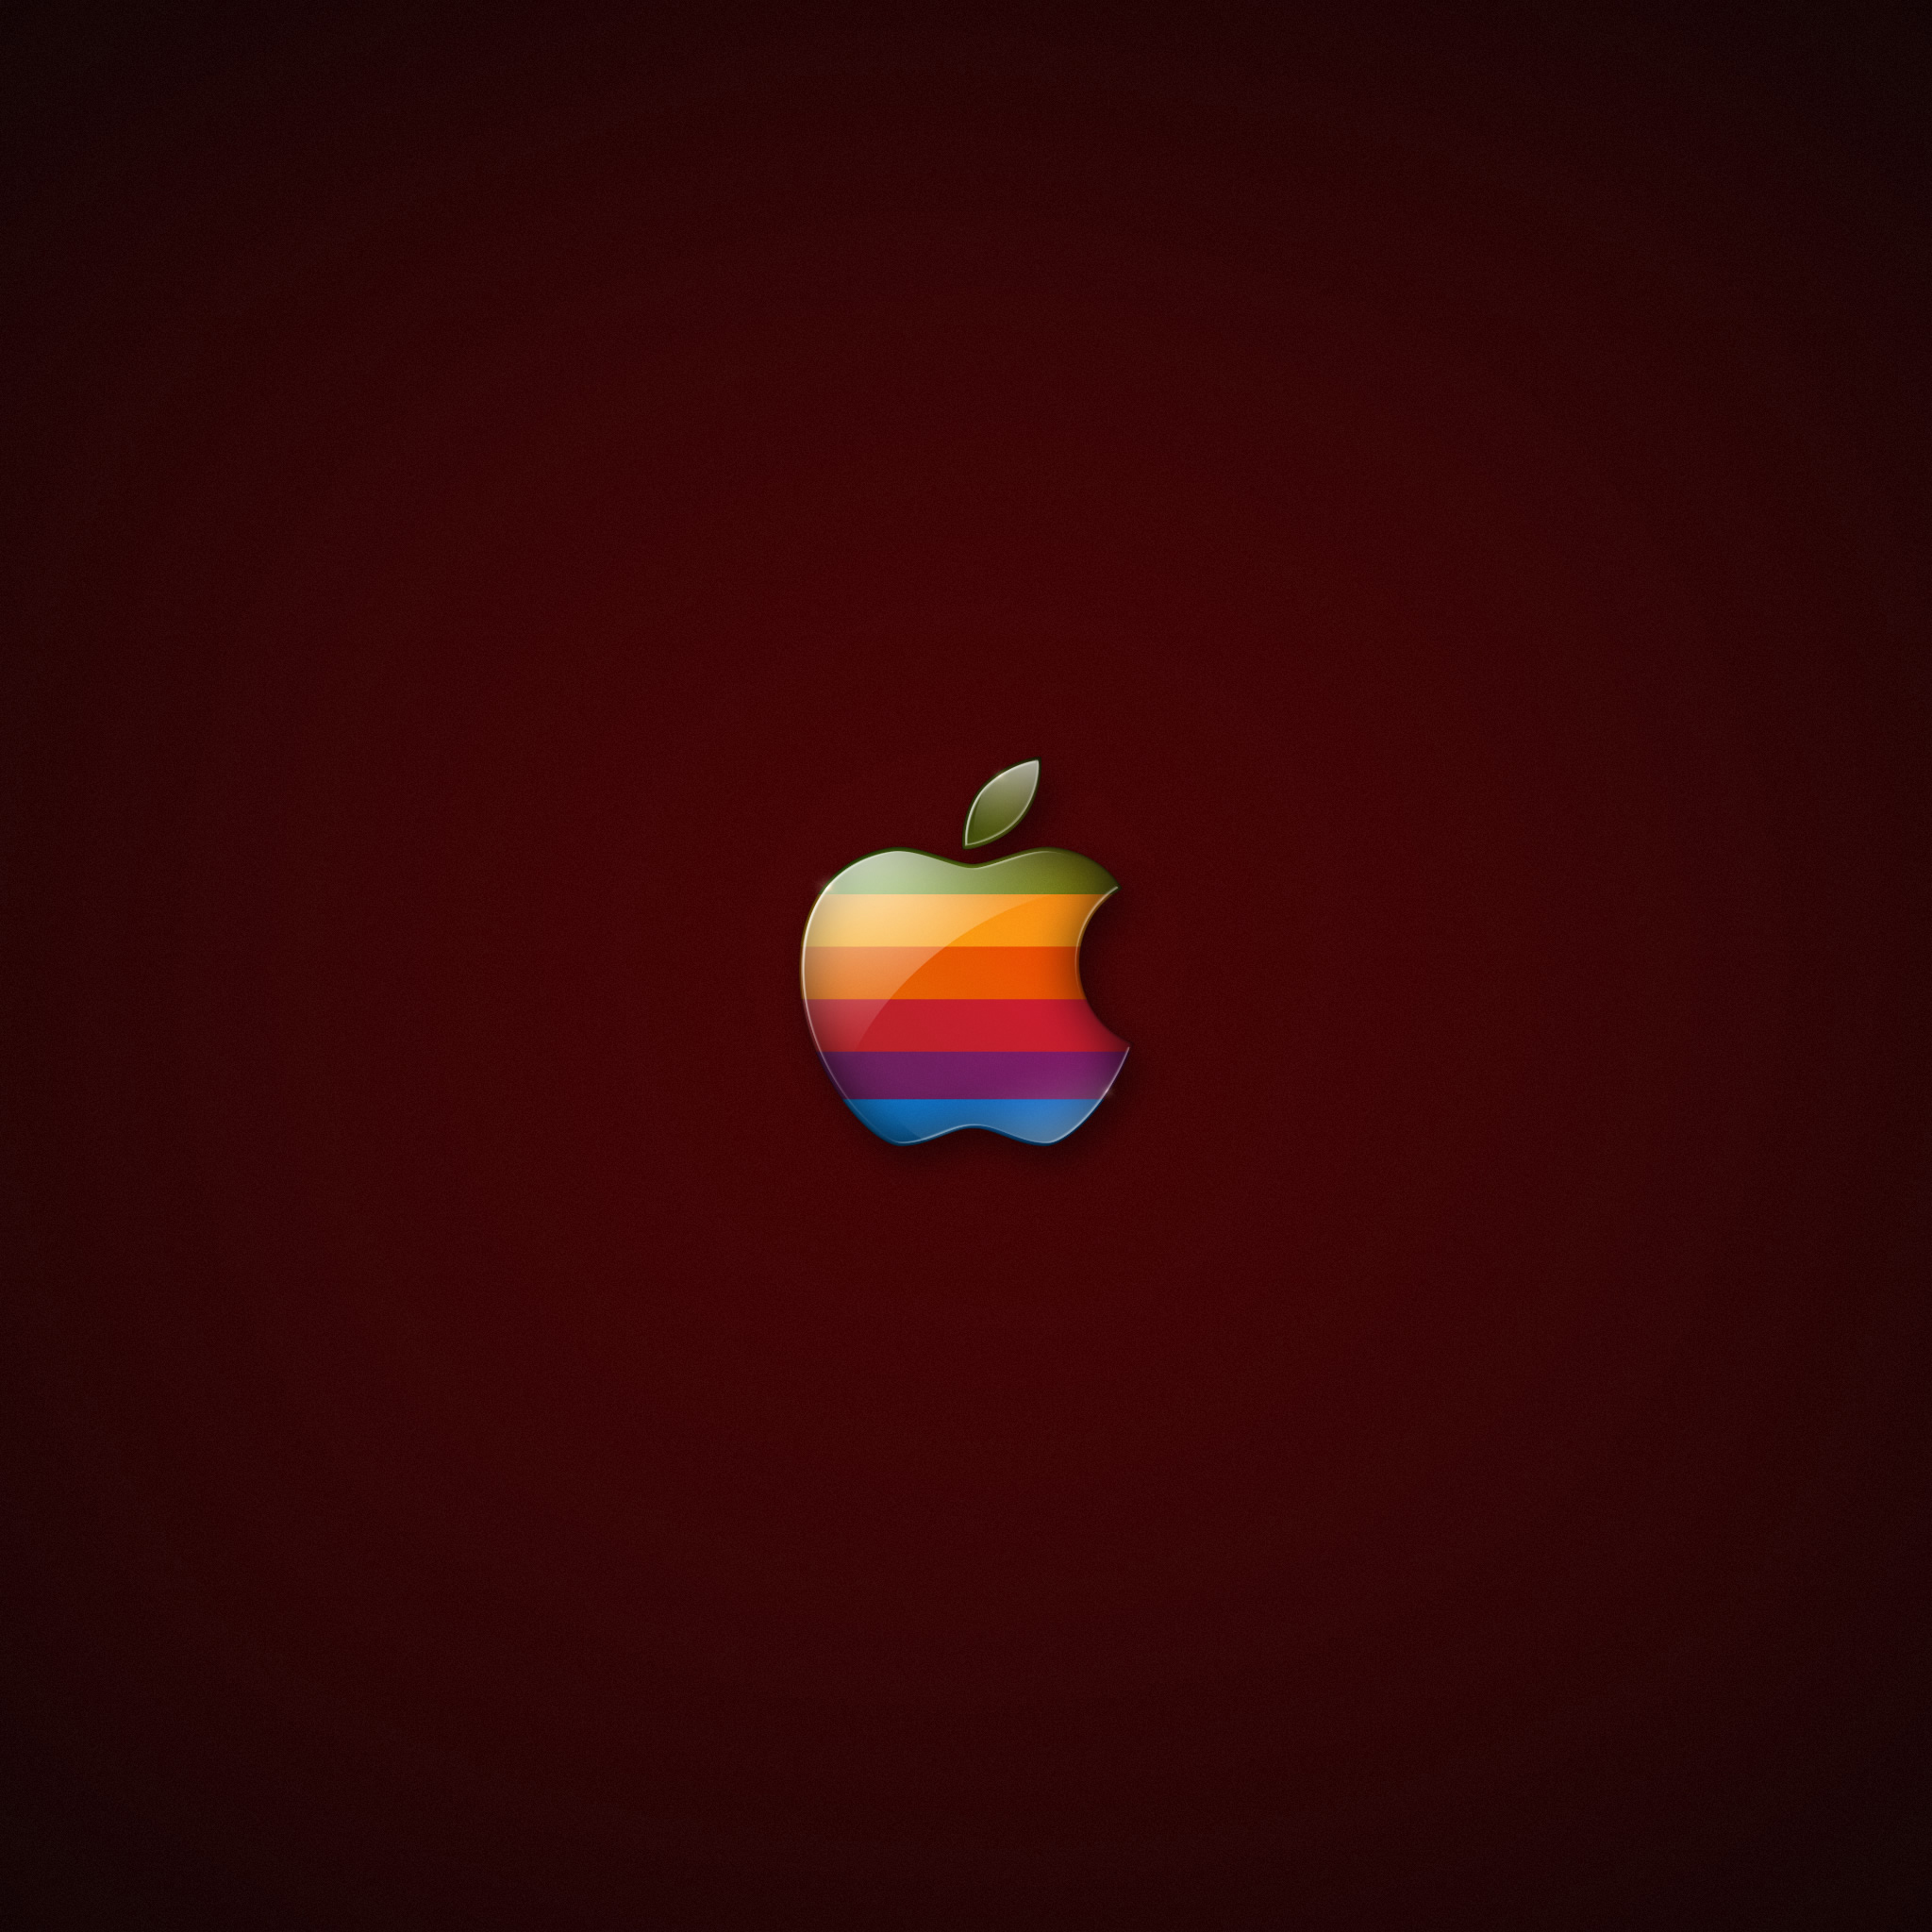 Classic-Apple-3Wallpapers-iPad-Retina